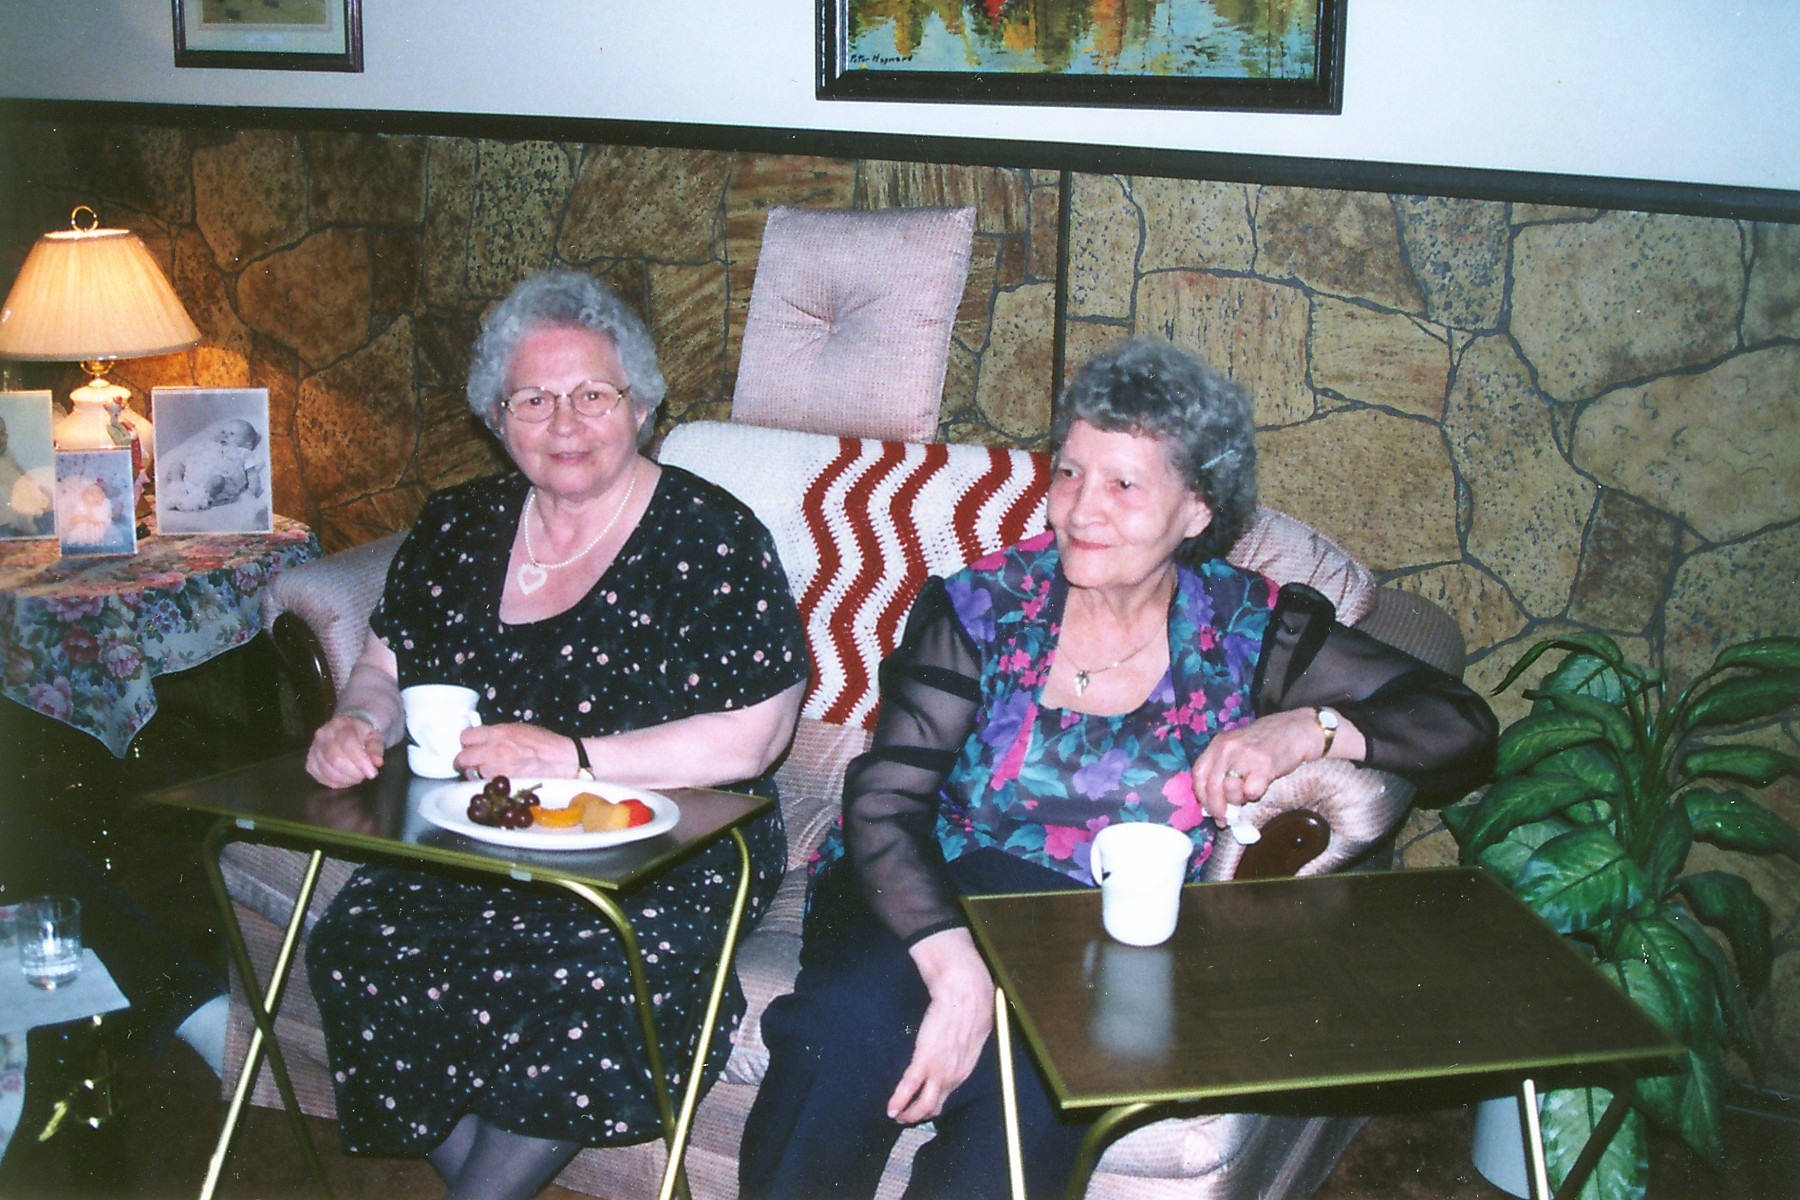 Mothers Day Image of Violet Zelinski and Mary Leschyshyn